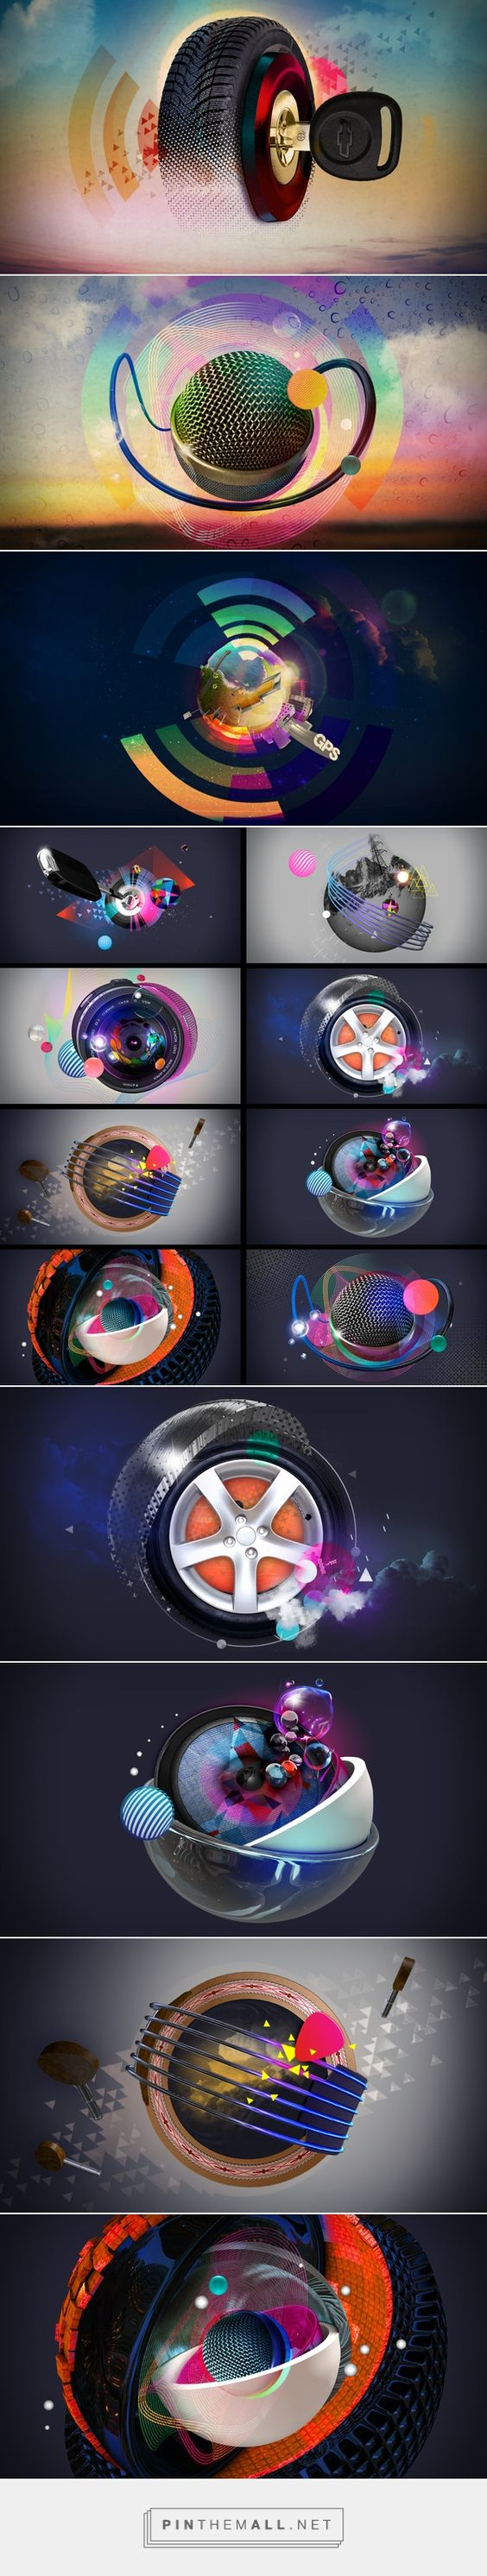 GPS Title Sequence on Behance | Roxanne Silverwood & Uzo Uzogiwe, motion graphics, 3D, Cinema 4D, Art Direction, Circular, Spherical, MTV, Music